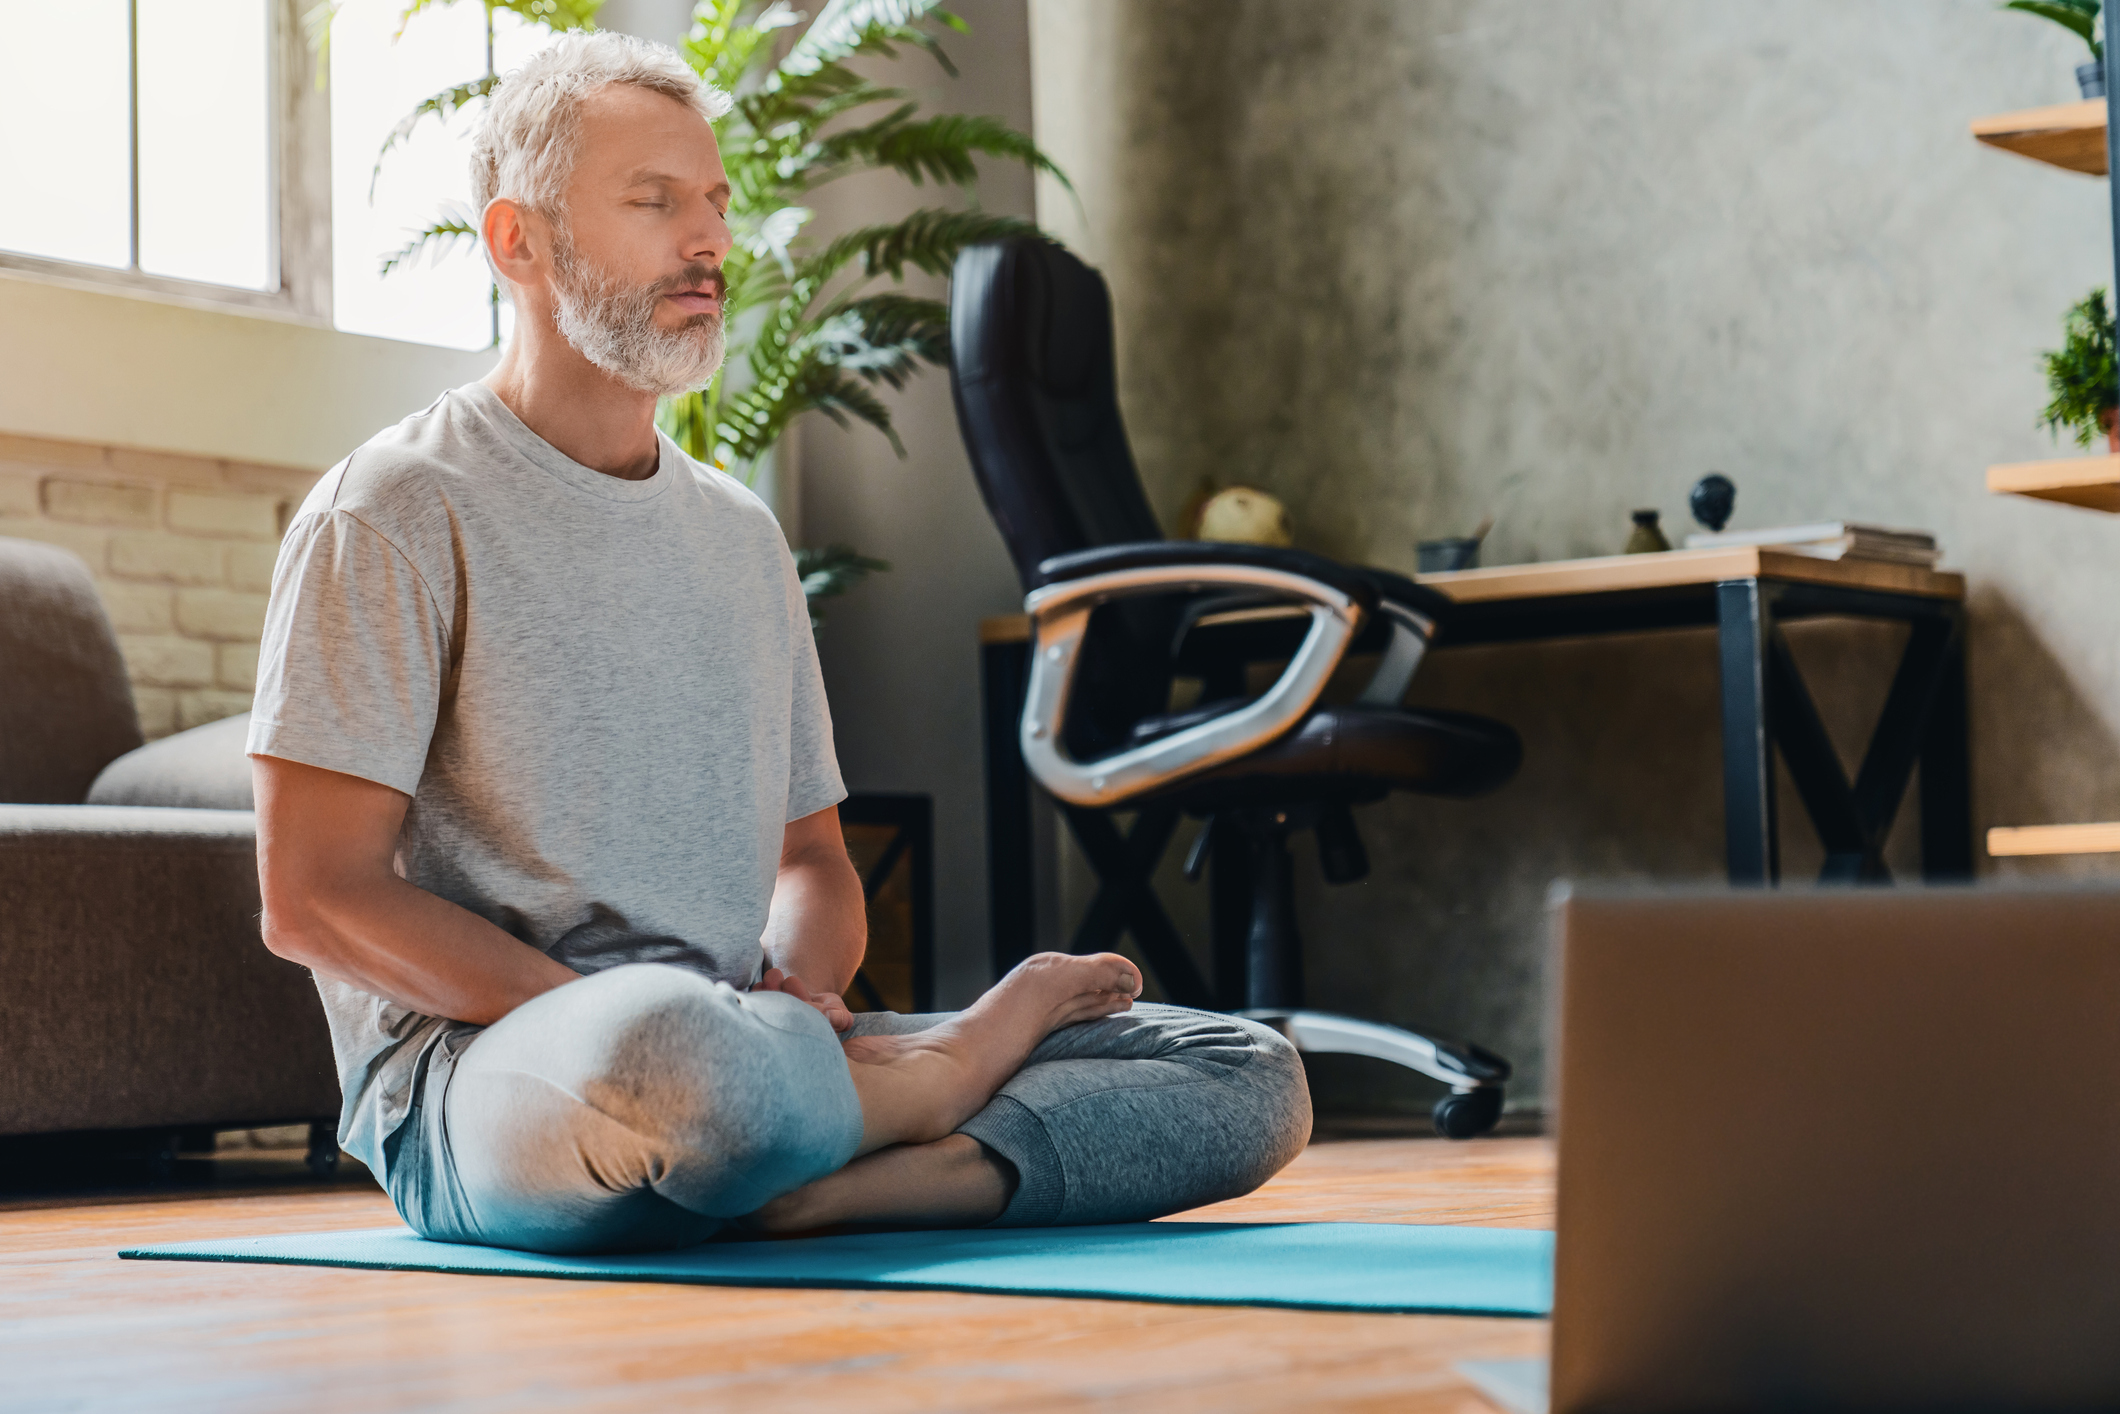 Meditation: Better concentration now and less degeneration later